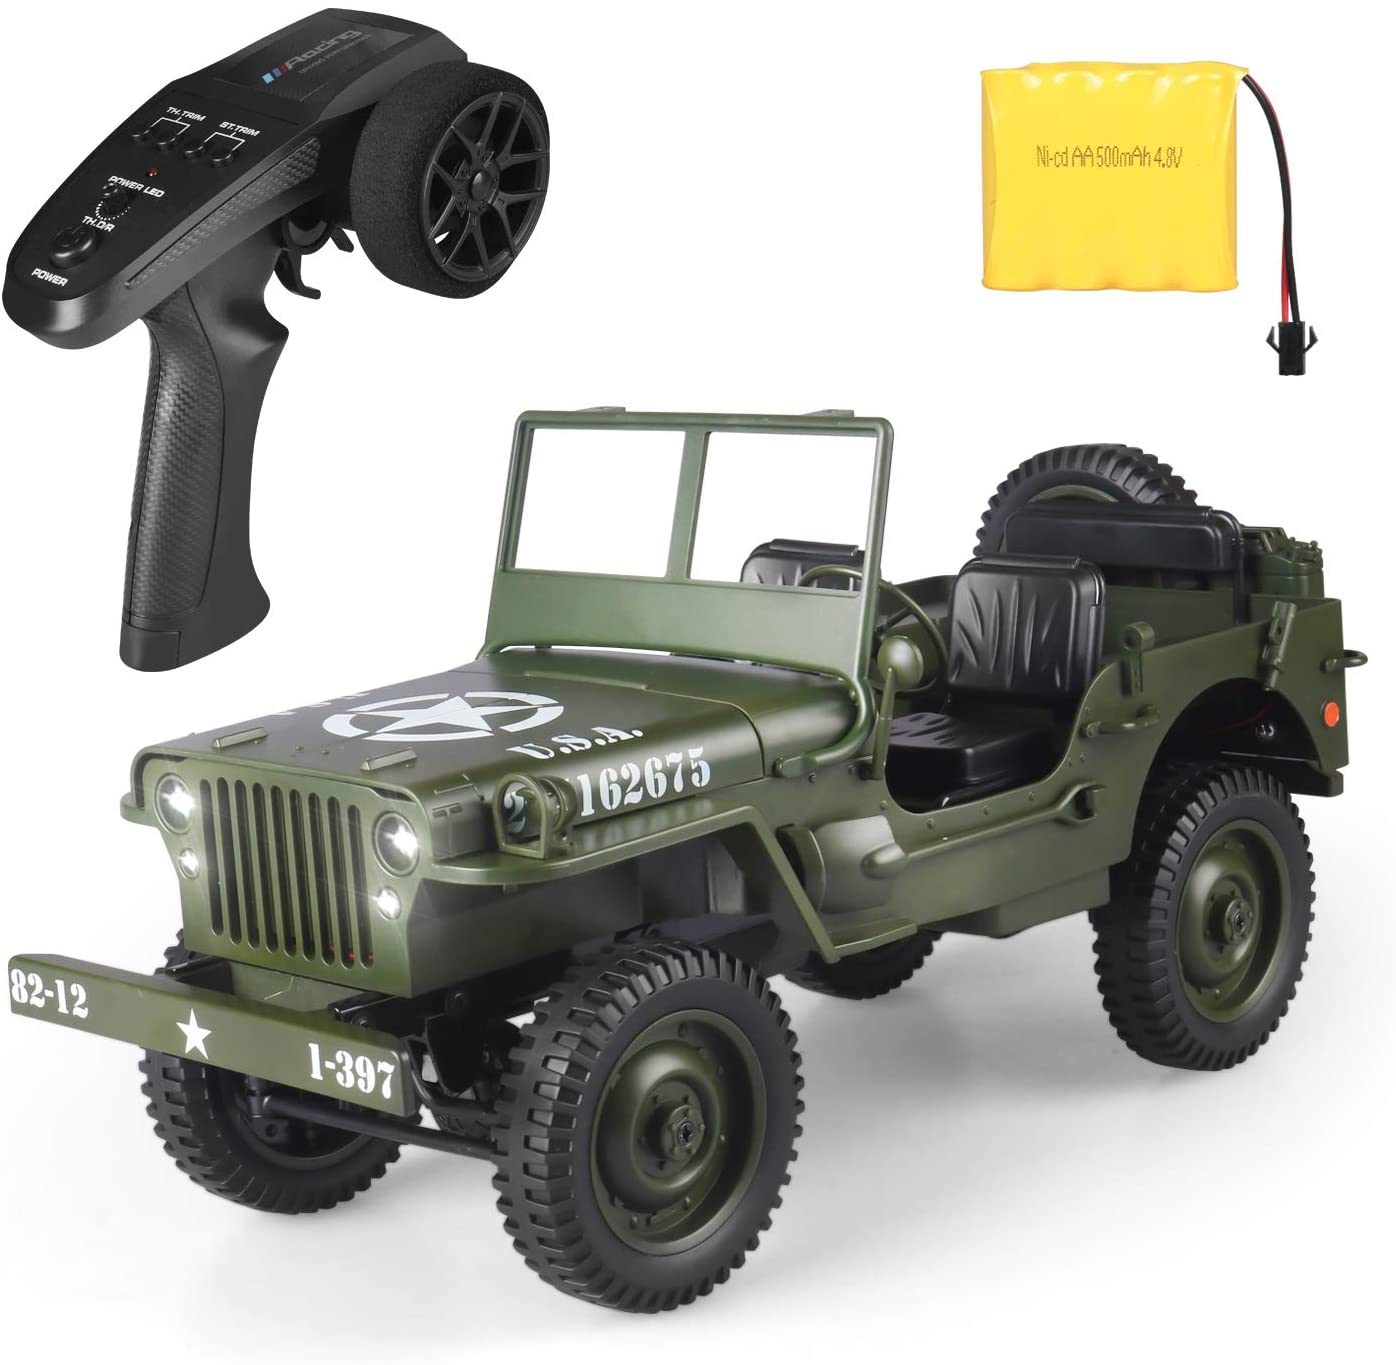 RC Car for Boy Toy,1:10 Scale Simulation Army High Speed 4WD 2.4Ghz RC Cars with Led Light,Military Model Electric Jeep Toys,RC Trucks 4x4 Offroad,Children Gift for Birthday and Christmas (Green)